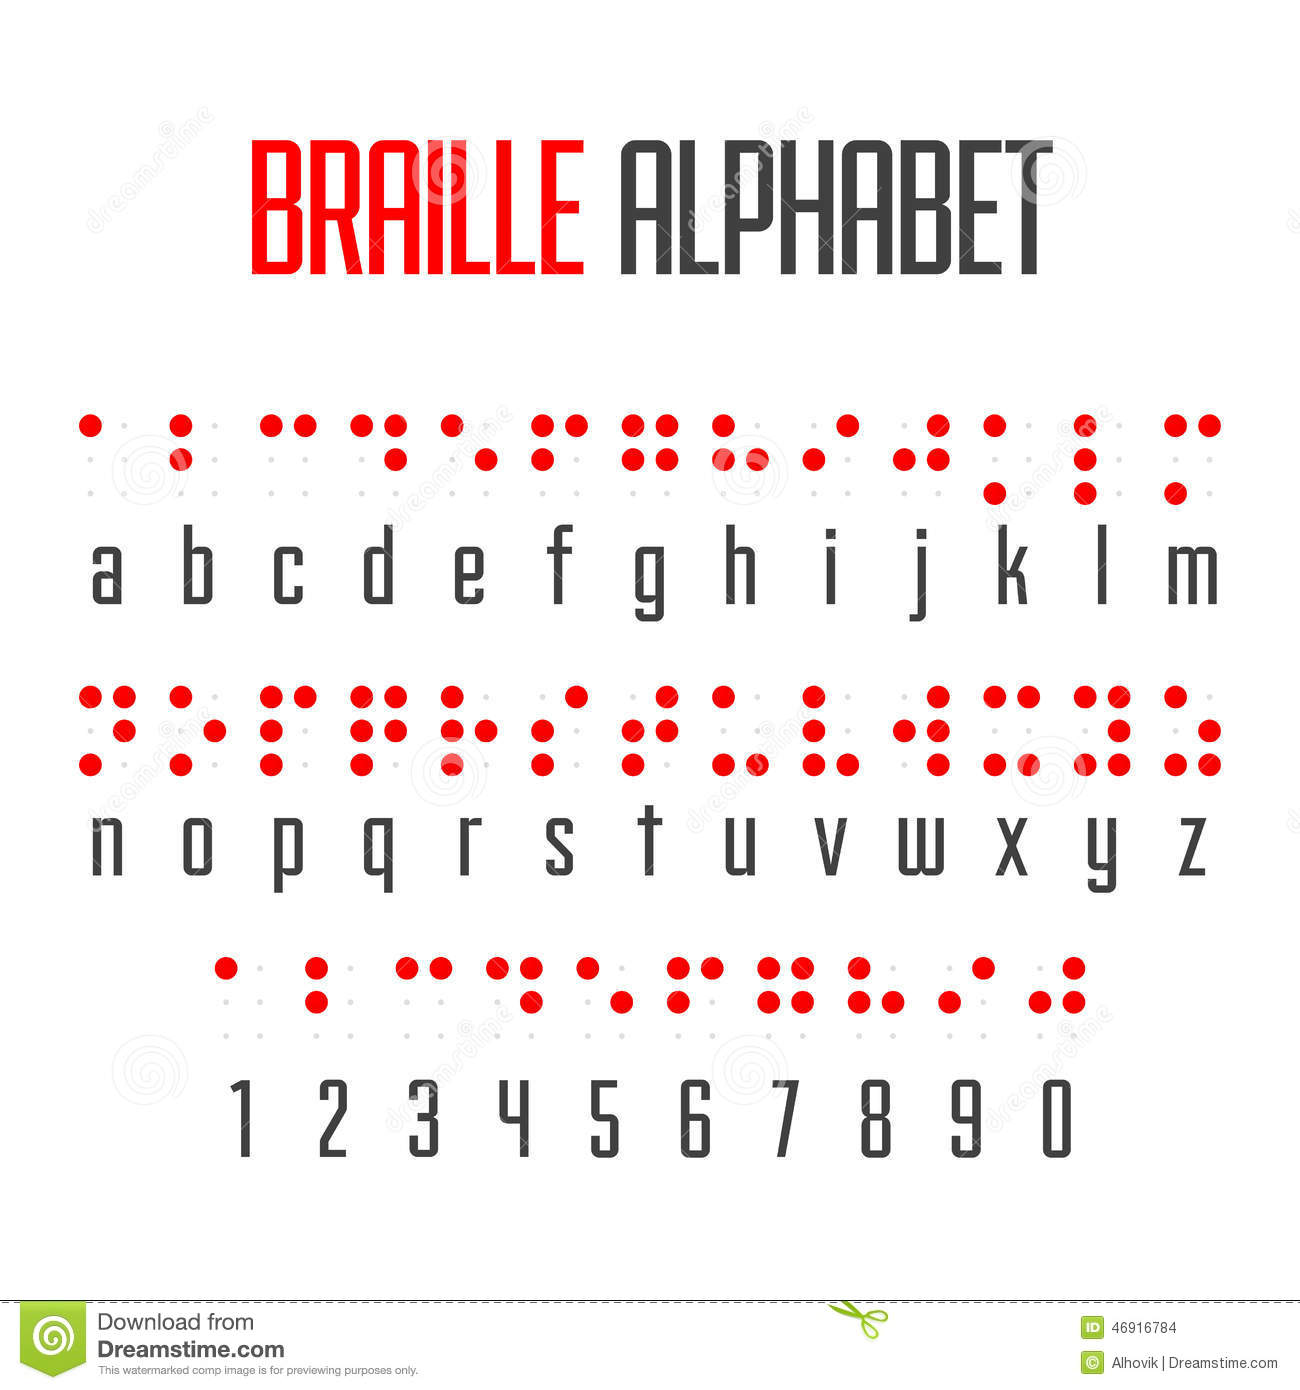 braille alphabet and numbers stock images